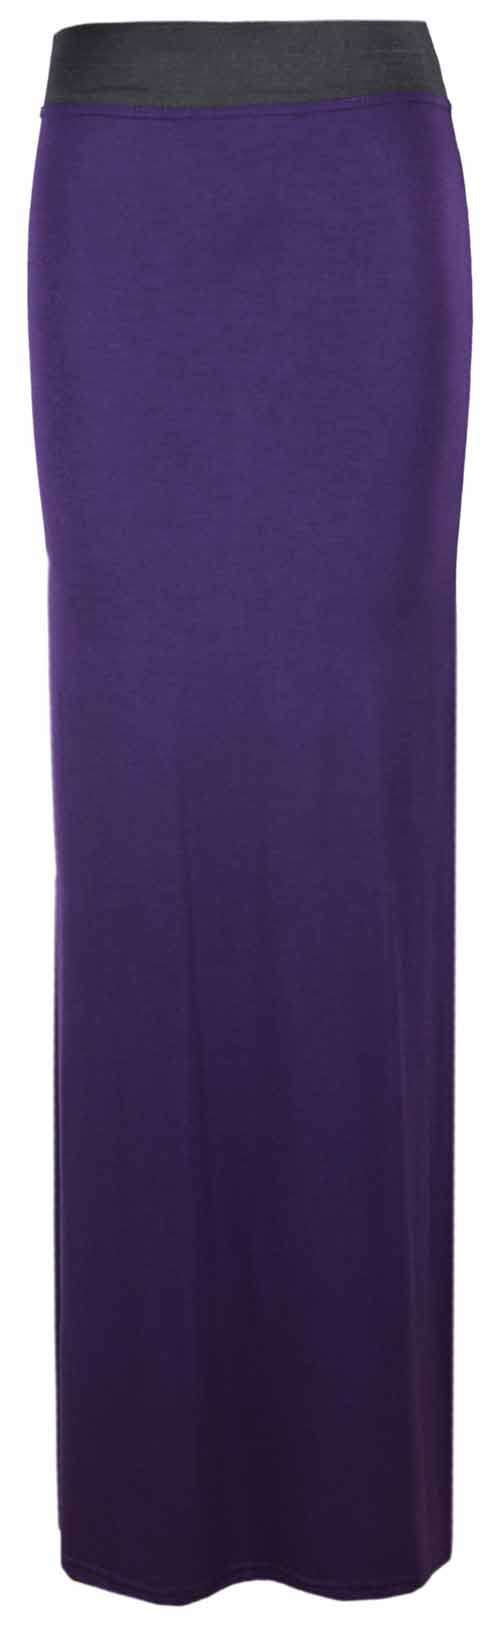 WOMENS-CONTRAST-ELASTIC-WAIST-LADIES-LONG-STRETCH-MAXI-DRESS-FULL-LENGTH-SKIRT